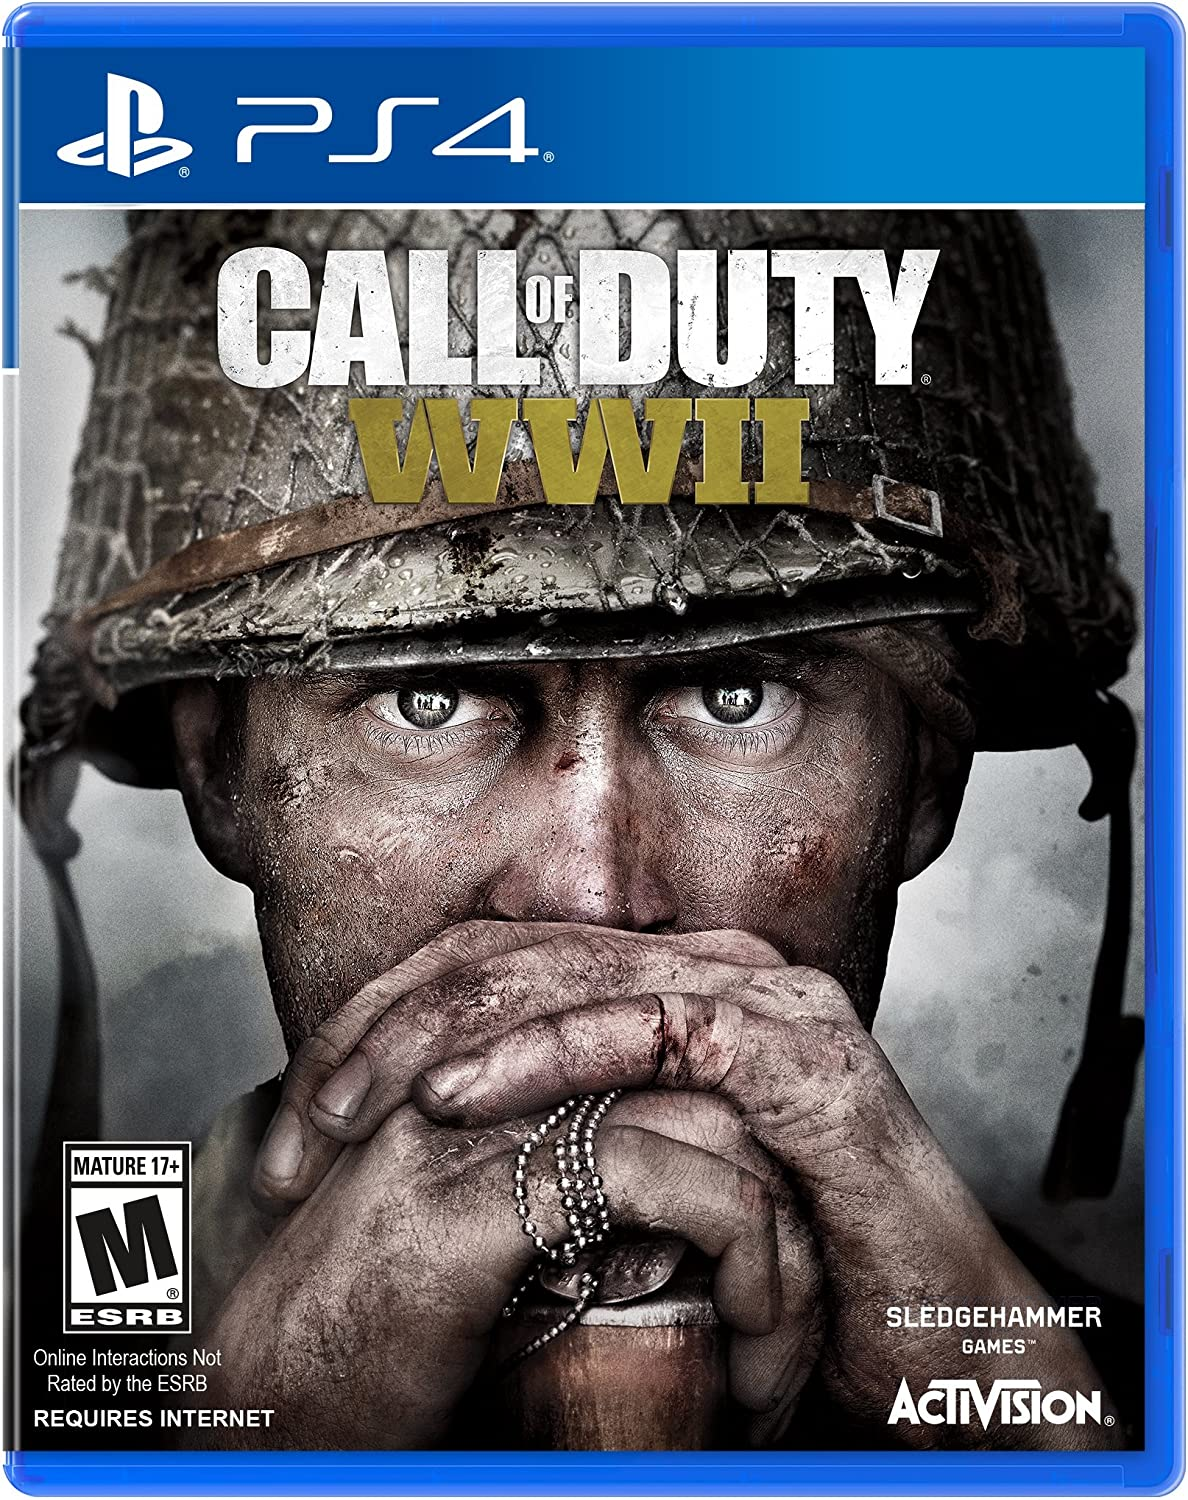 PS4 Game,Amazon.com